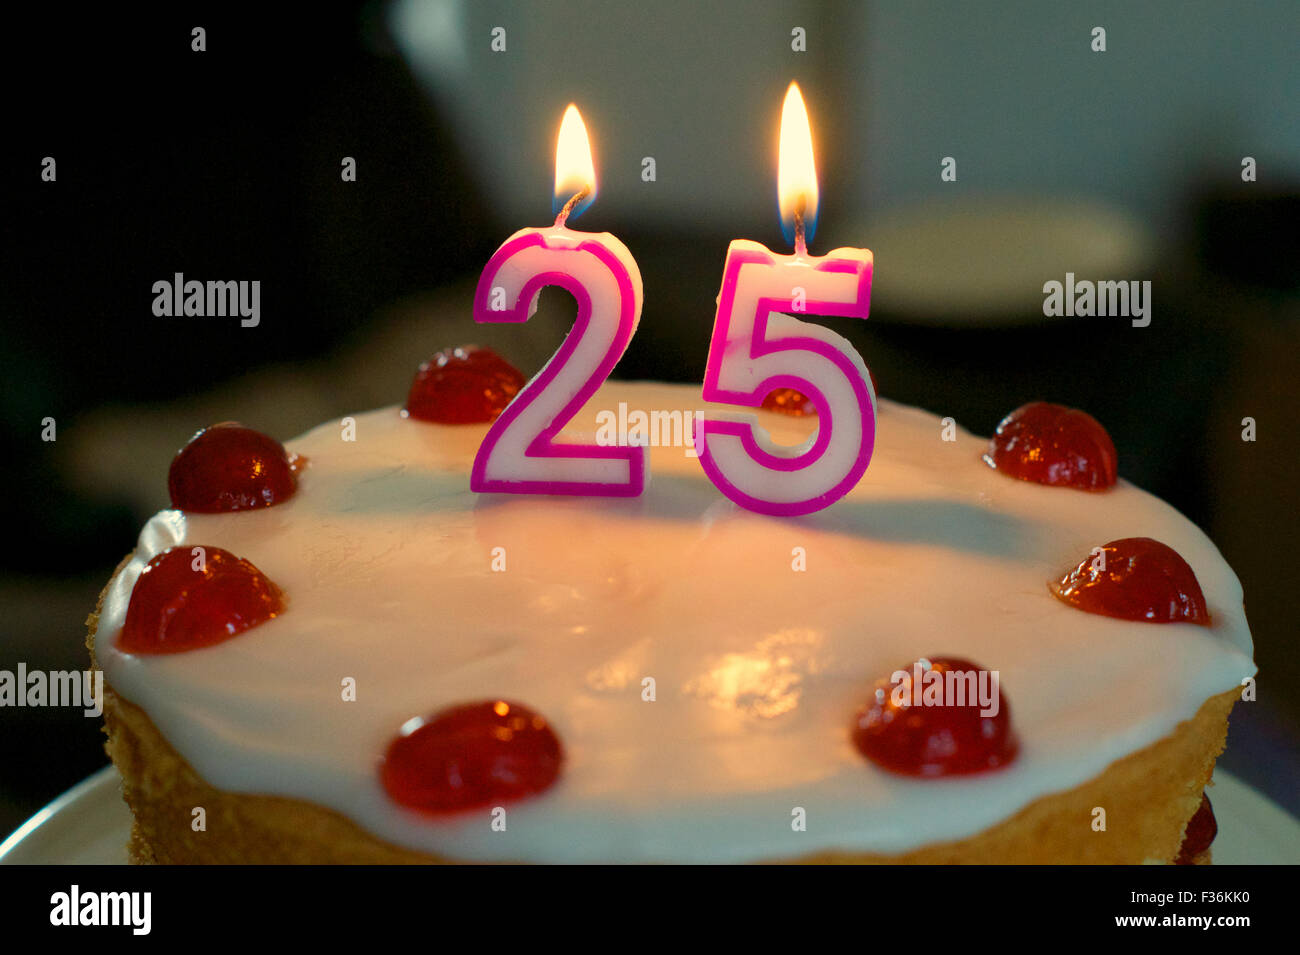 Wondrous 25Th Birthday Cake With Cherries And 2 5 Candles On Top Stock Funny Birthday Cards Online Alyptdamsfinfo